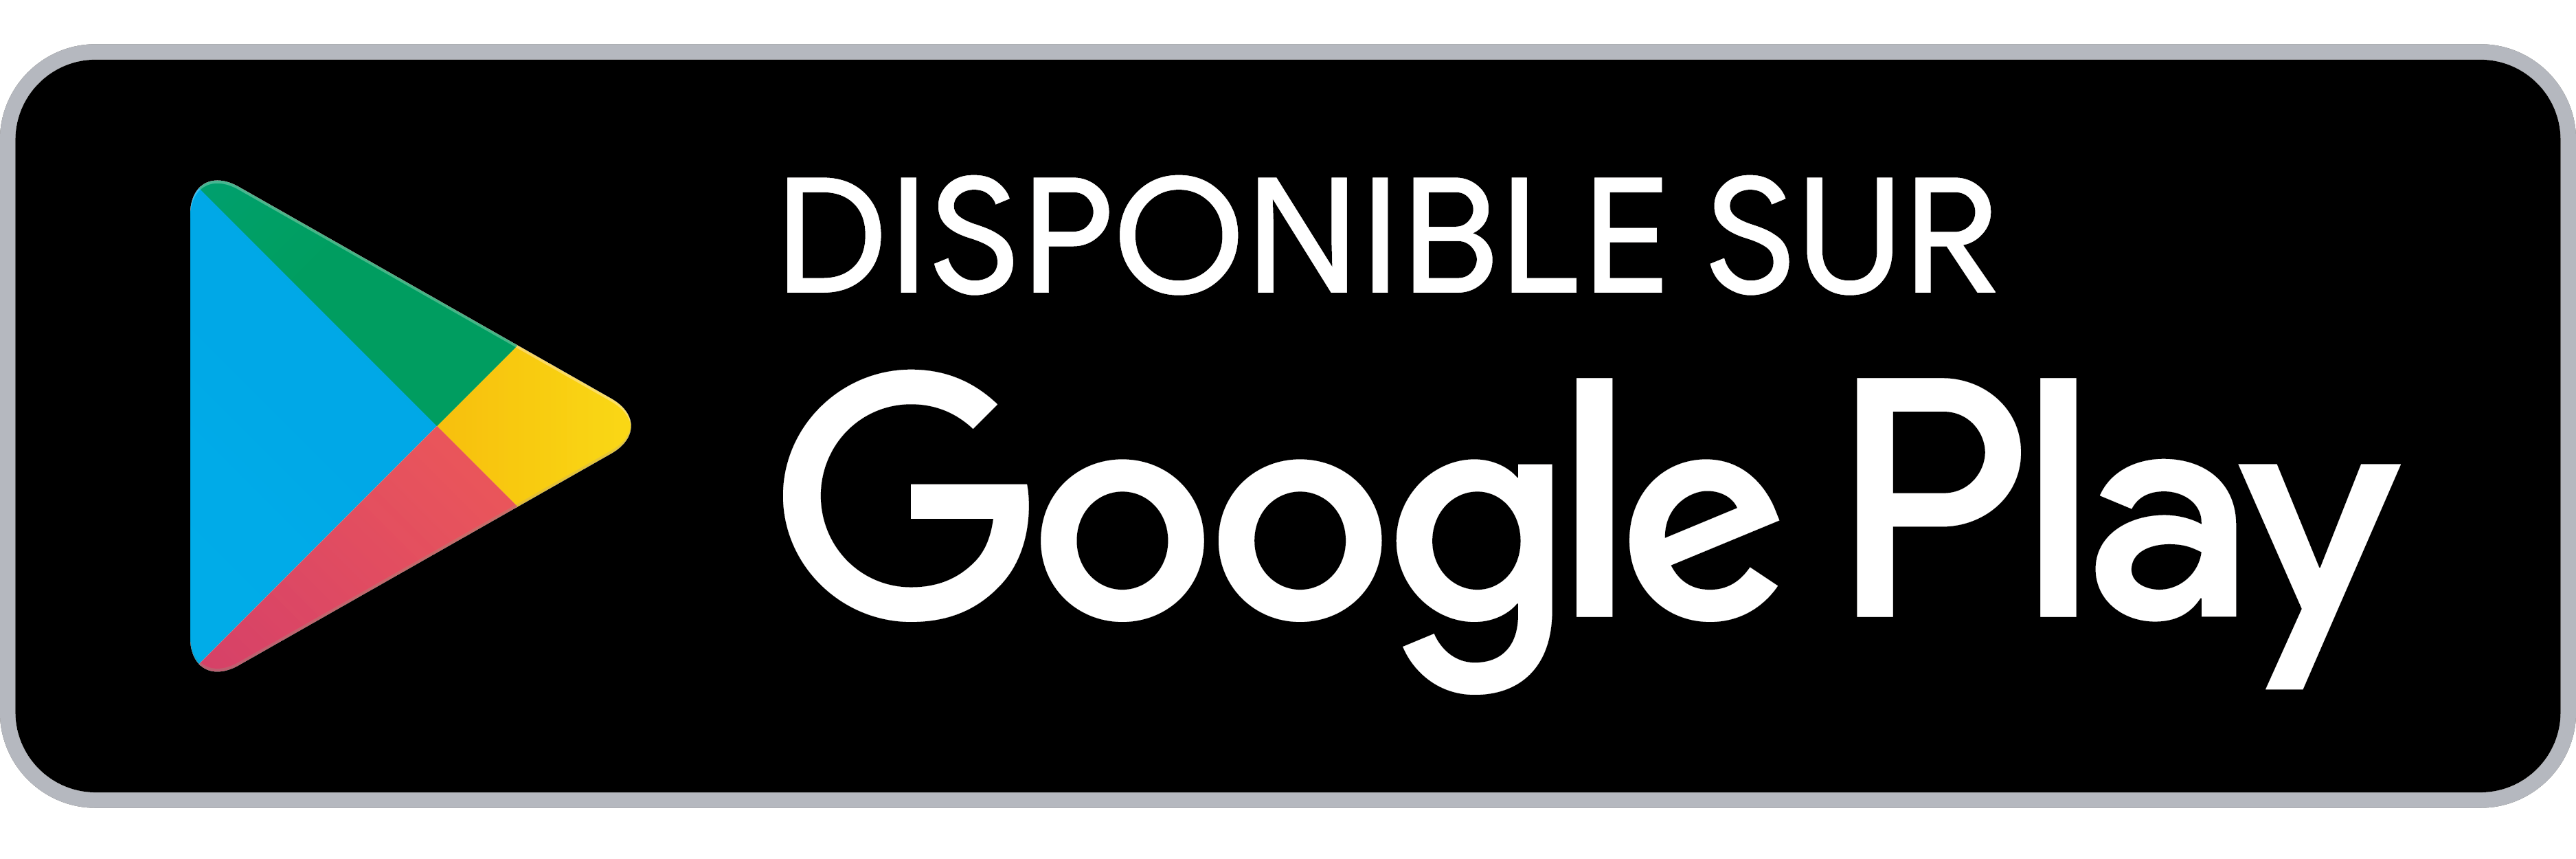 Image result for disponible sur google play